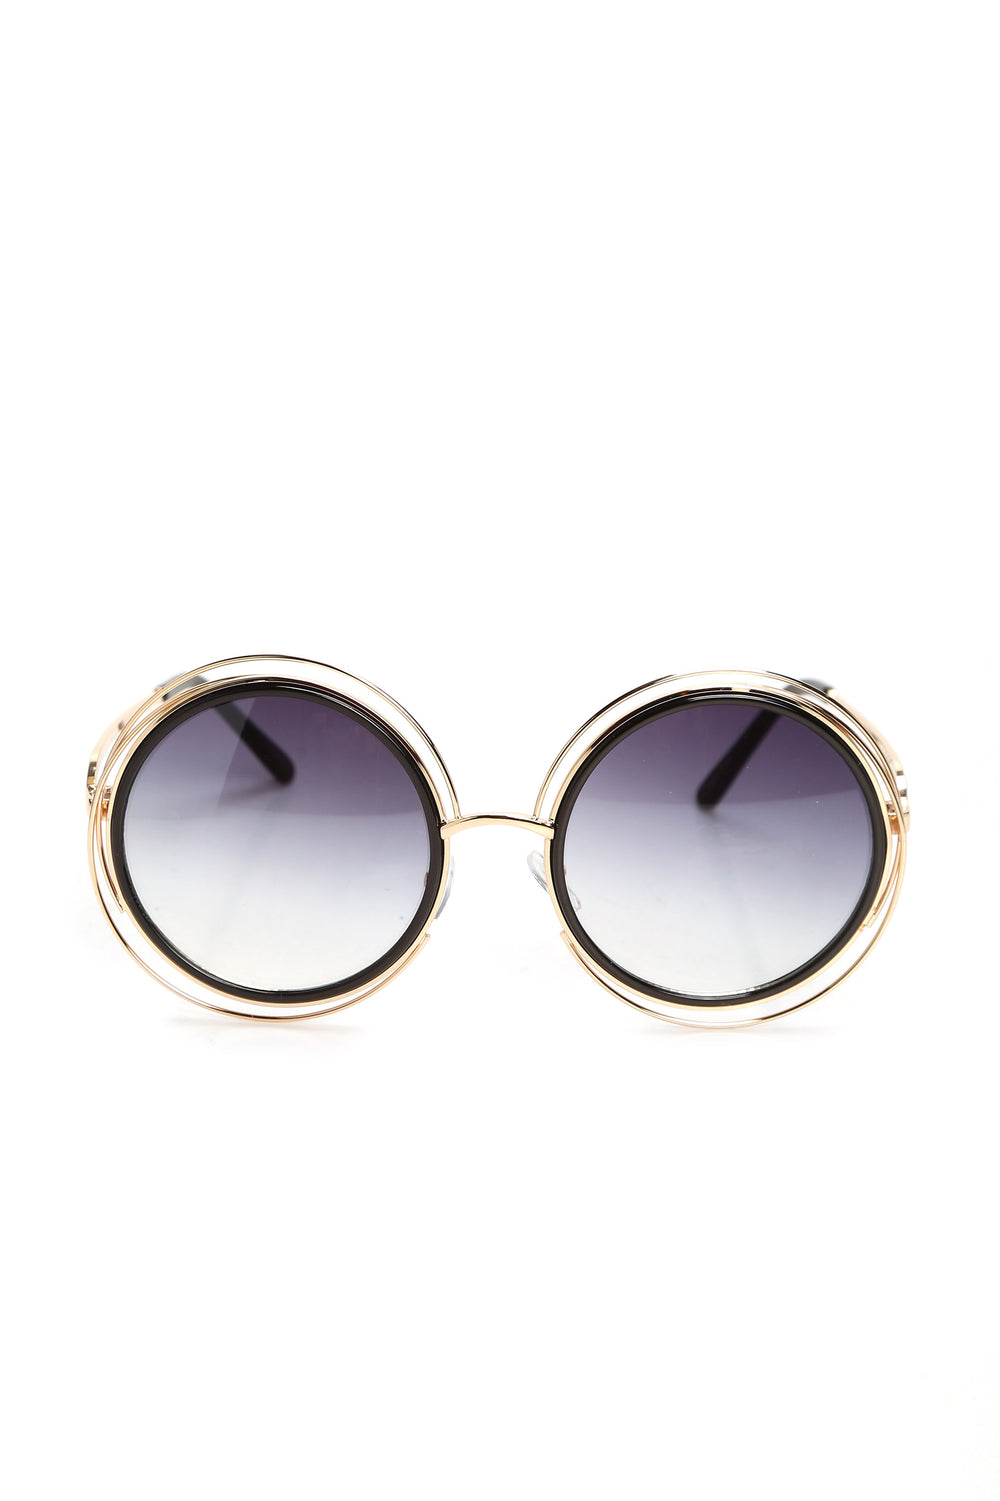 In Circles Sunglasses - Smoke/Gold